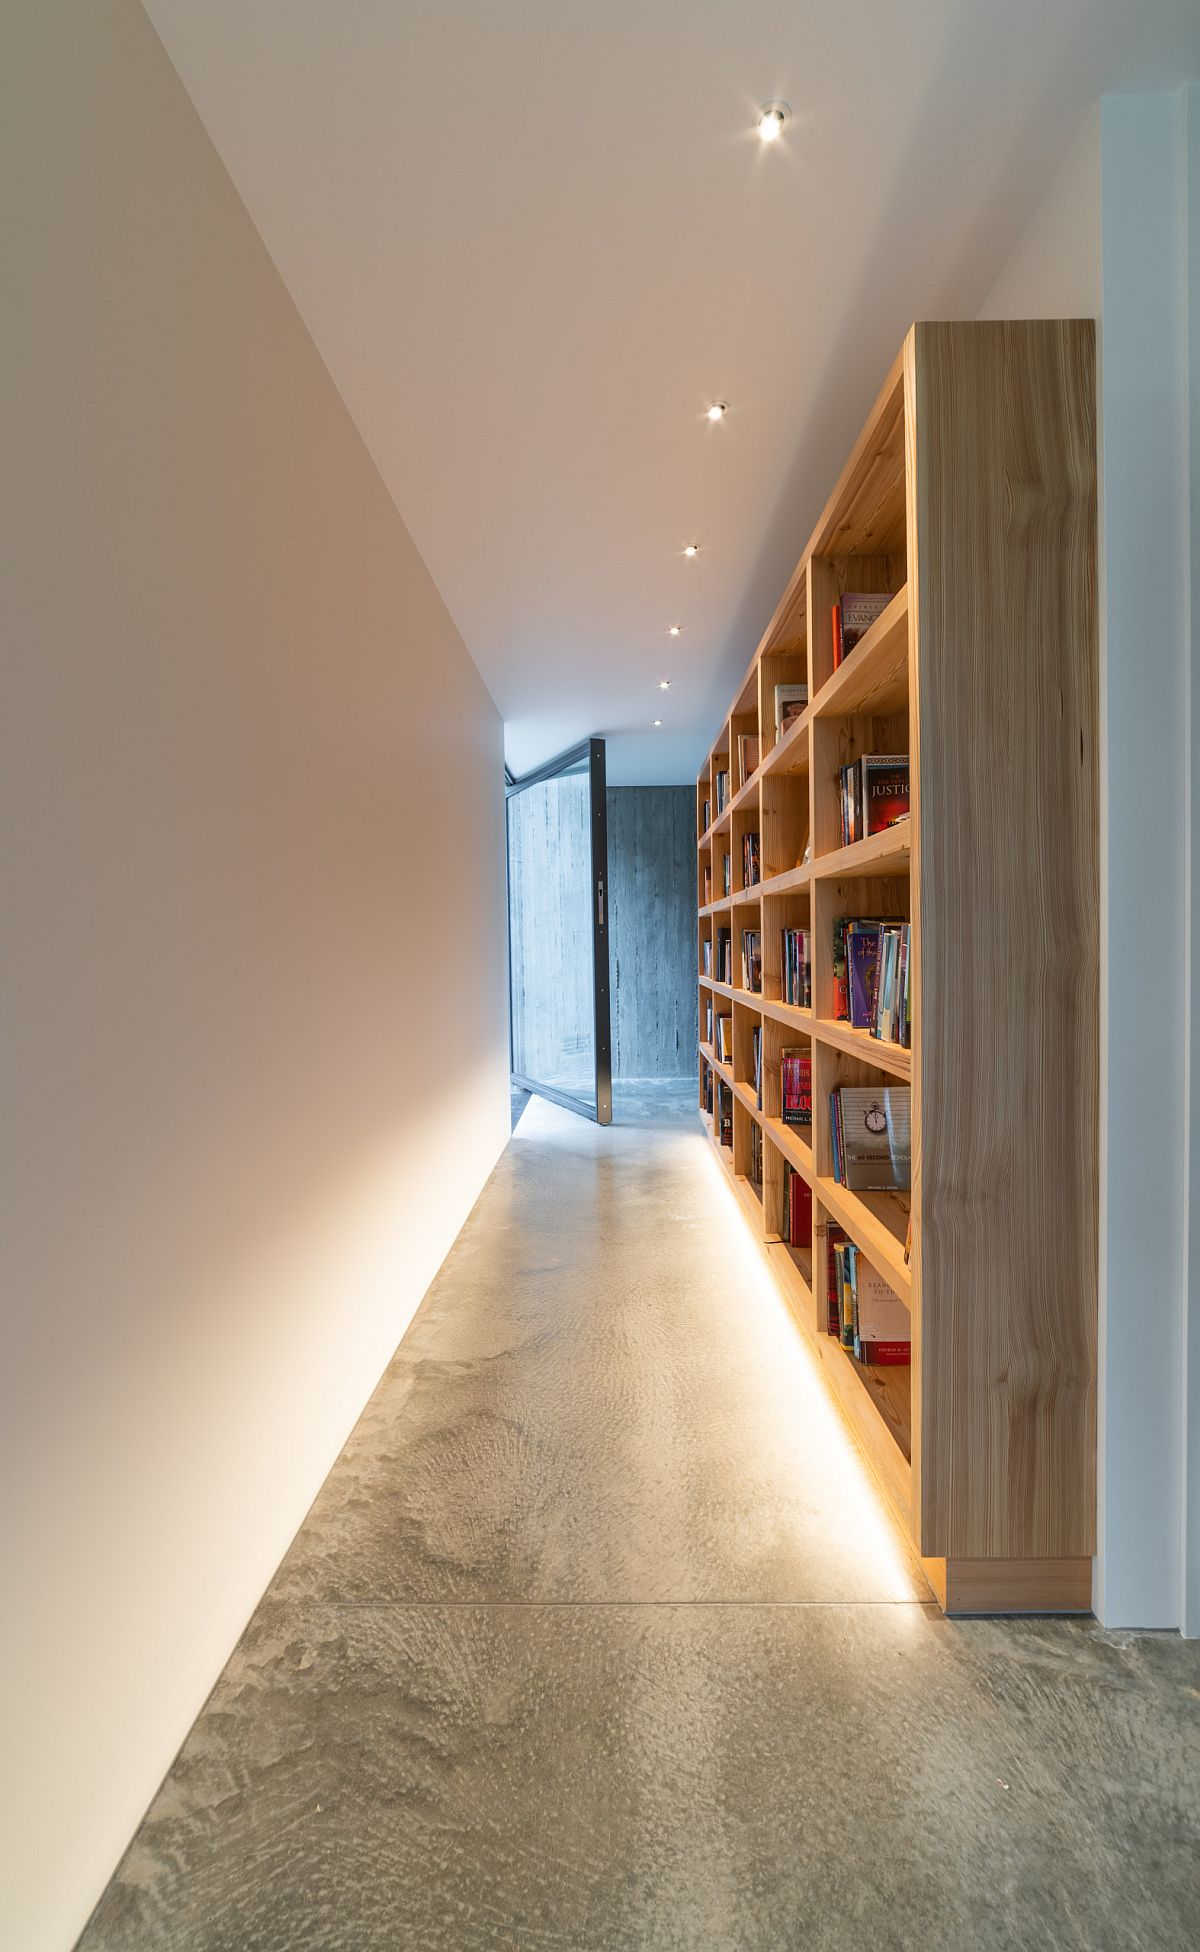 Custom wooden bookshelf in the hallway adds something different to the modern home